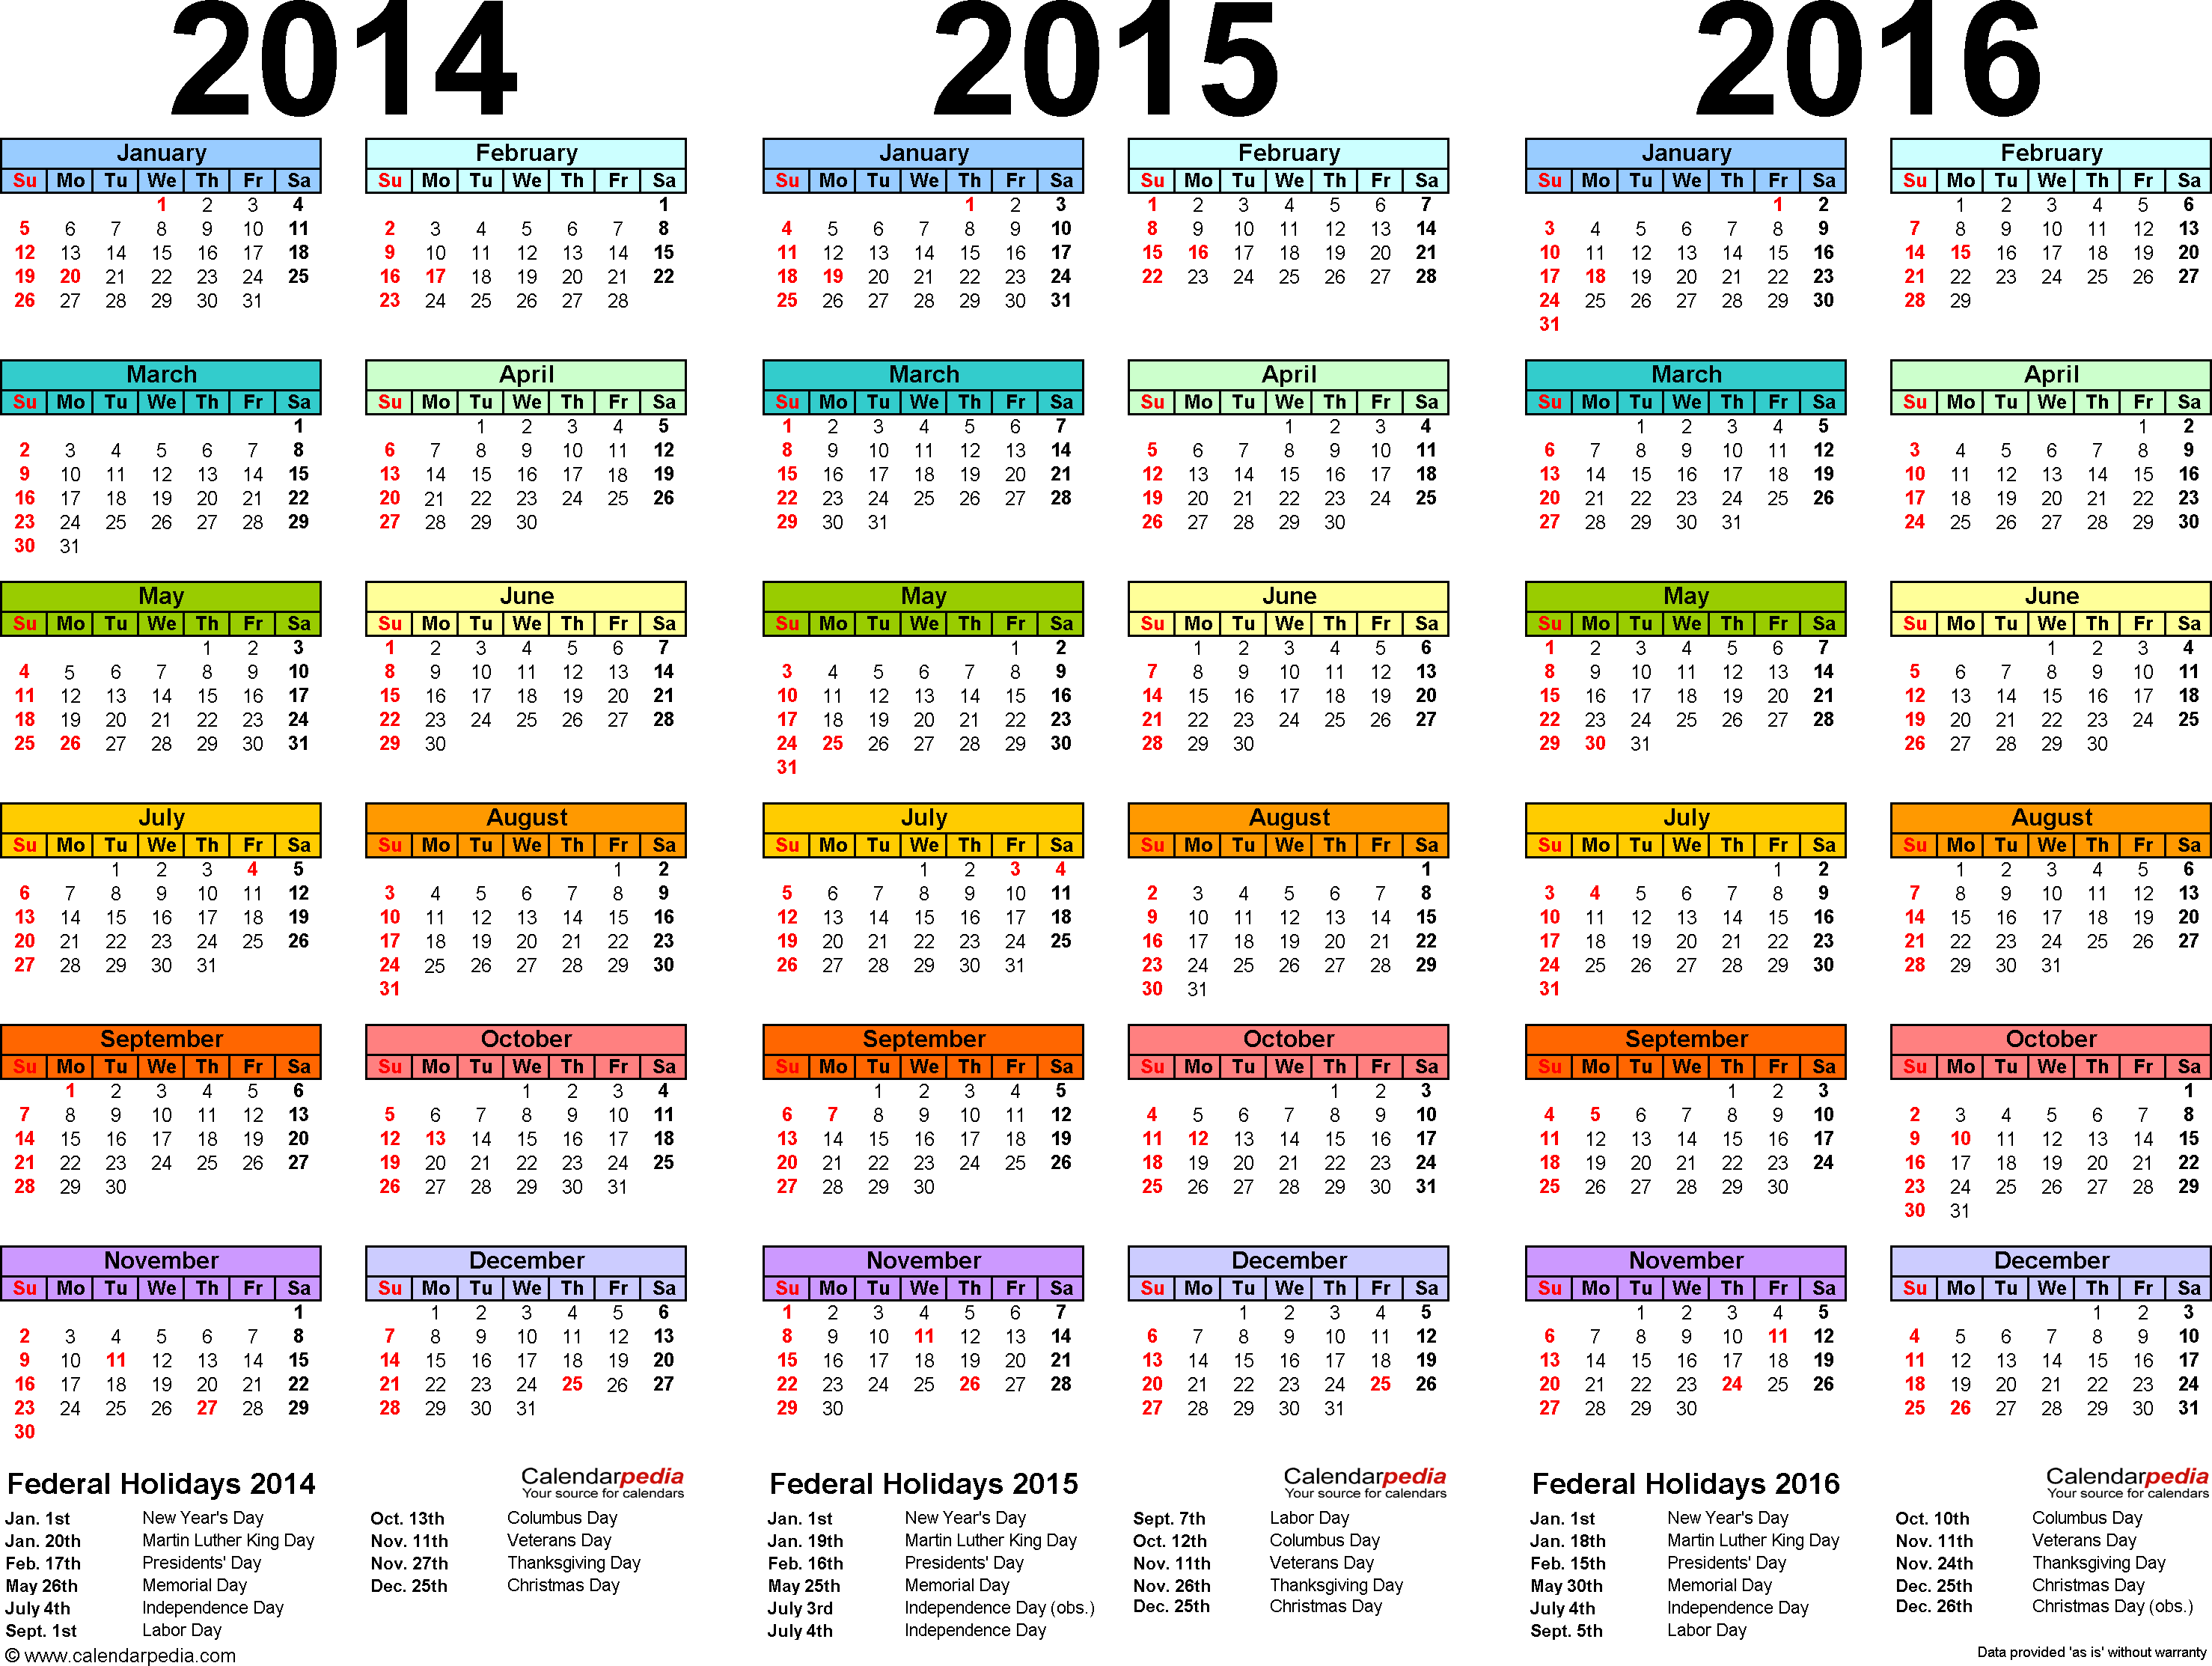 8 Images of 3 Year Calendar 2014 2015 2016 Printable